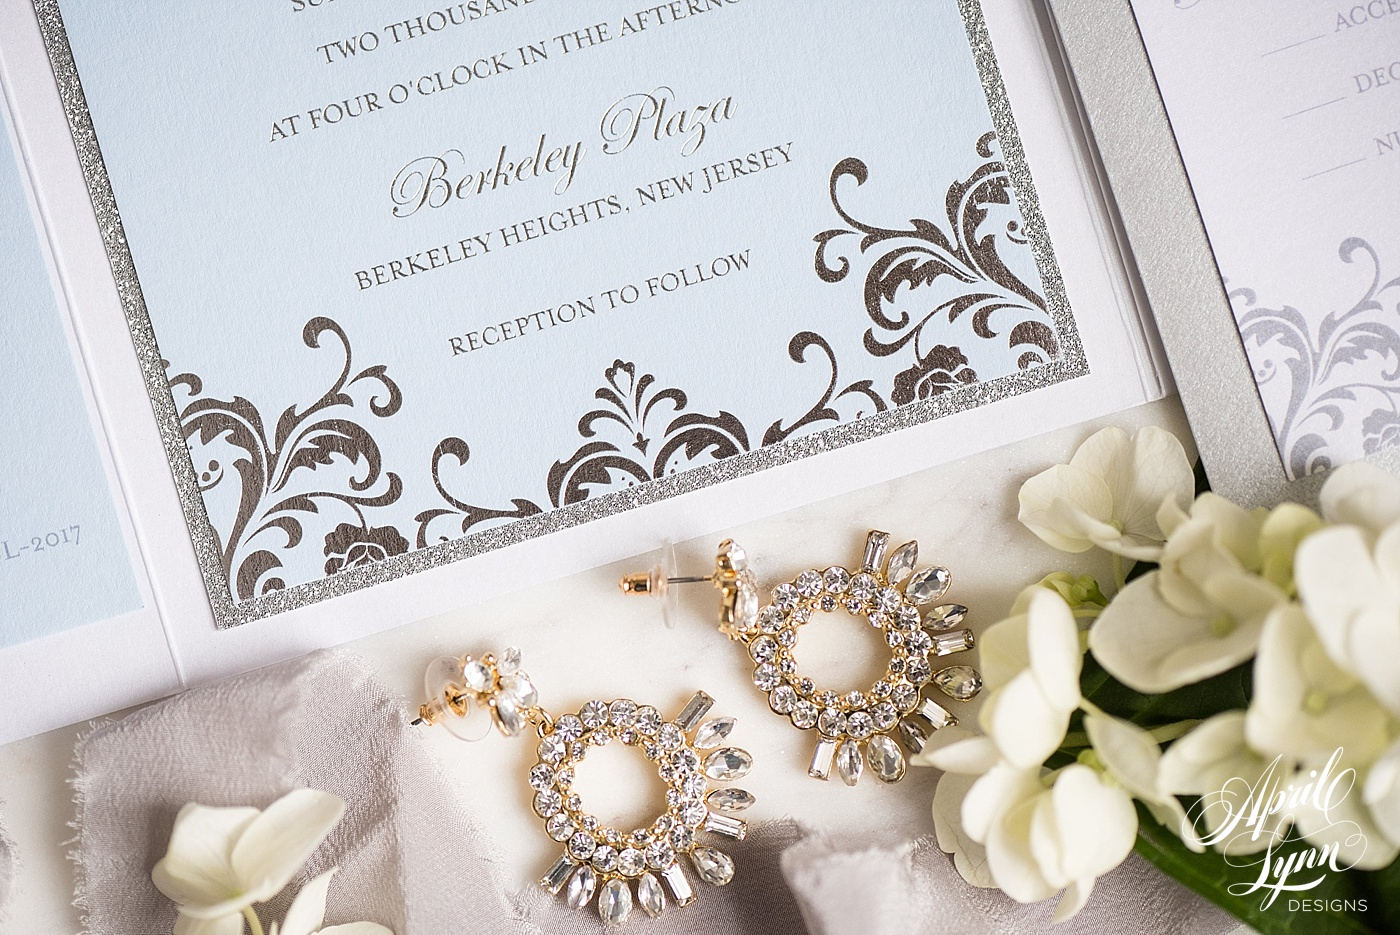 Glam Pocketfold Disney Wedding Invitation Suite | www.aprillynndesigns.com